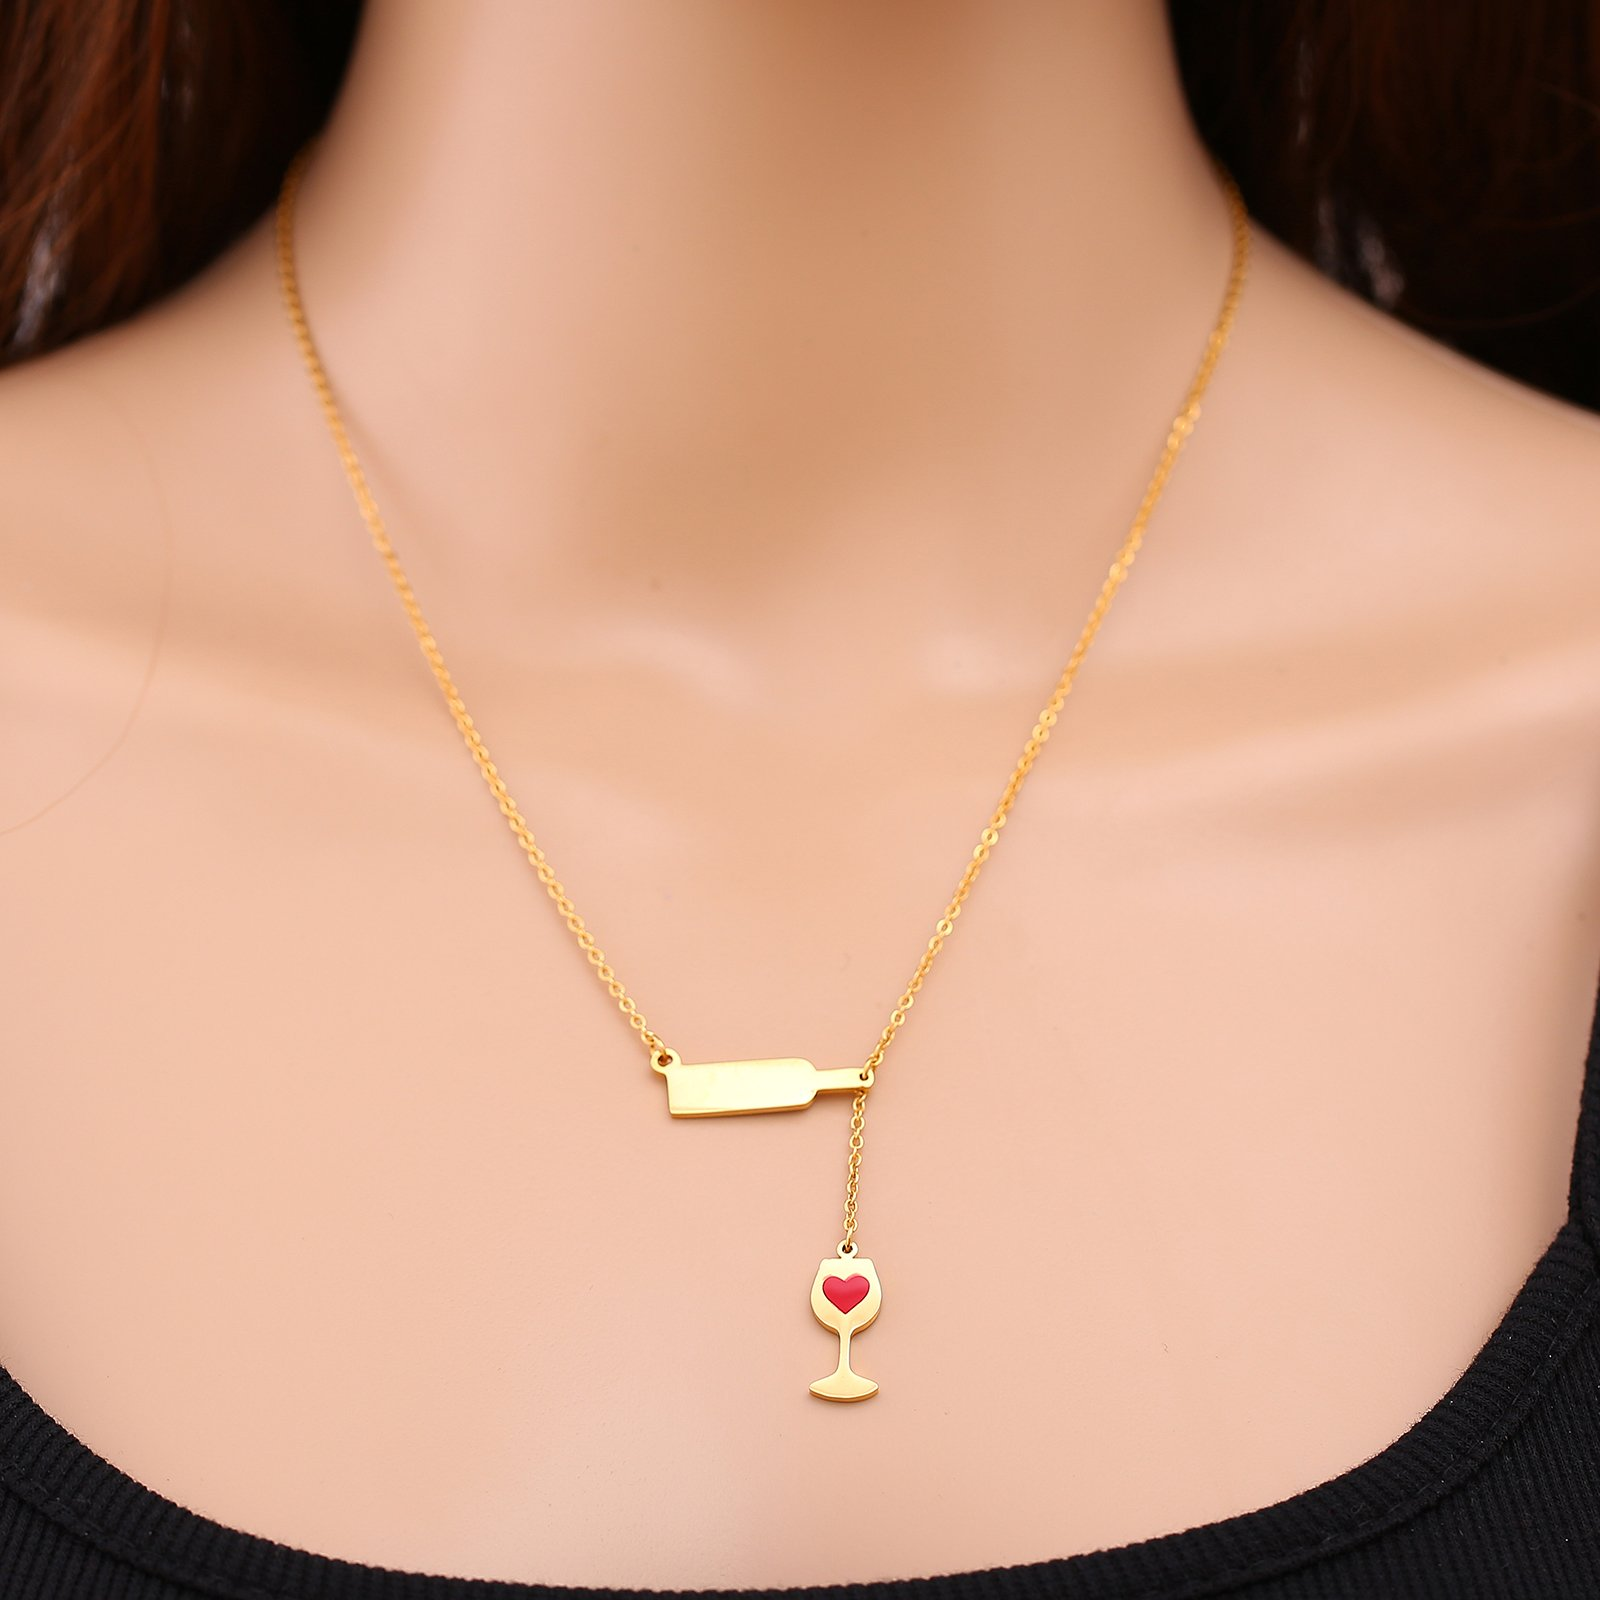 Stainless Steel Love Wine Cheers Red Enamel Heart Pendant Necklace Women's Girl's Gold/Silver 18'' Jewelry